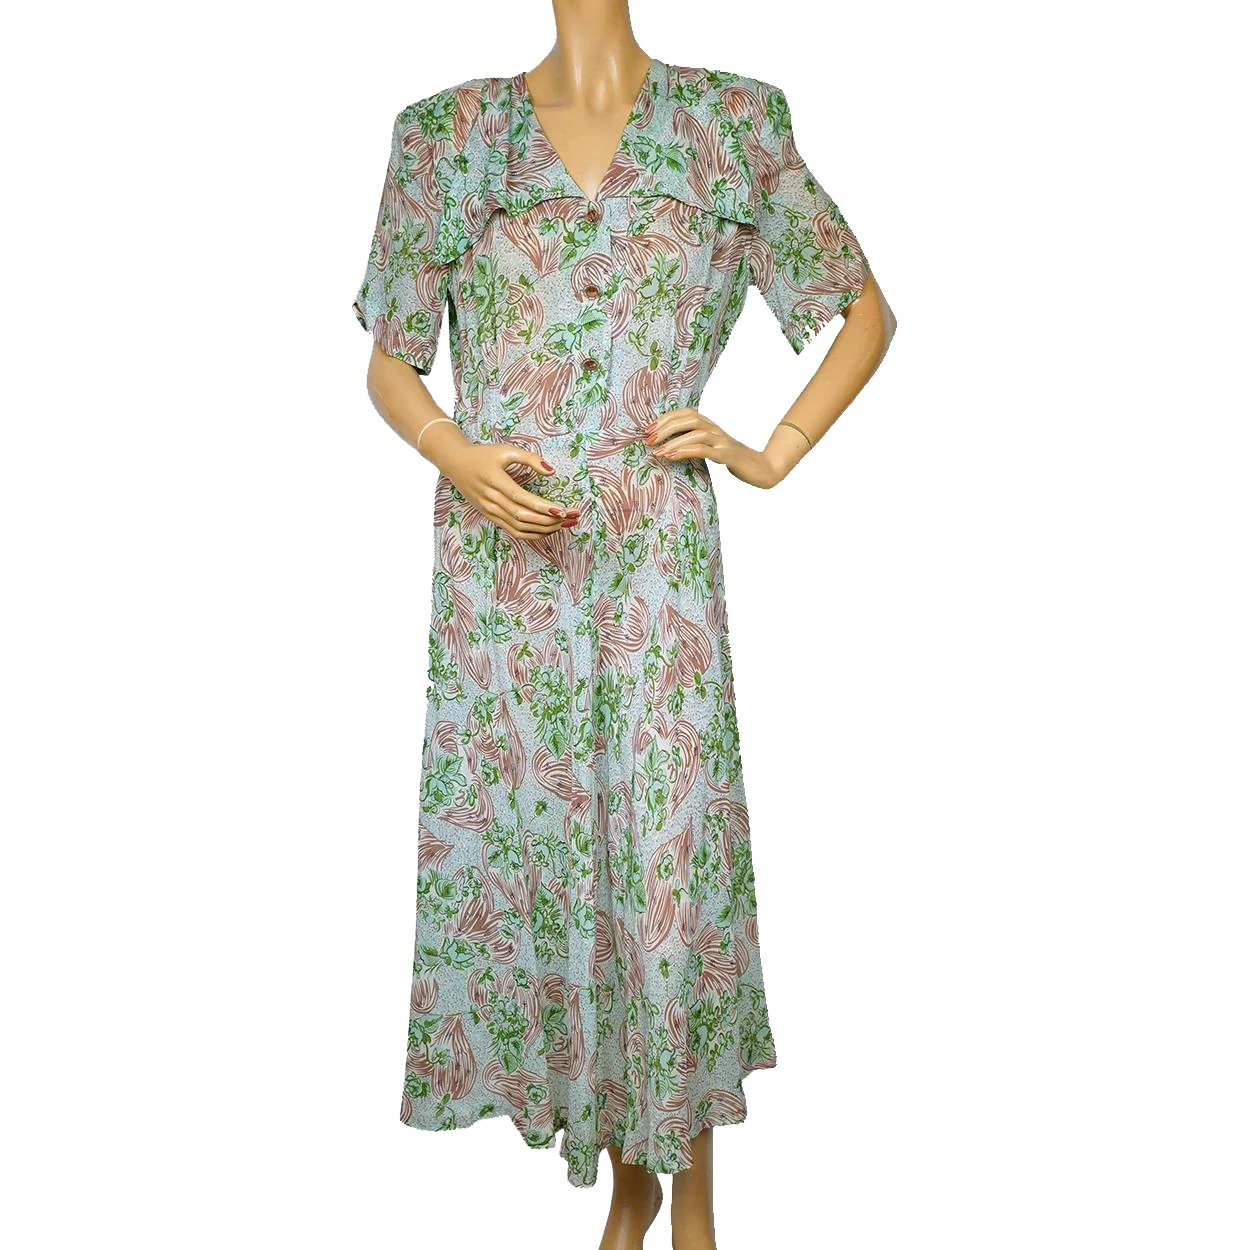 de387efaeac Vintage 1940s Day Dress Sheer Floral Novelty Print - Rayon Size L   Poppy s  Vintage Clothing